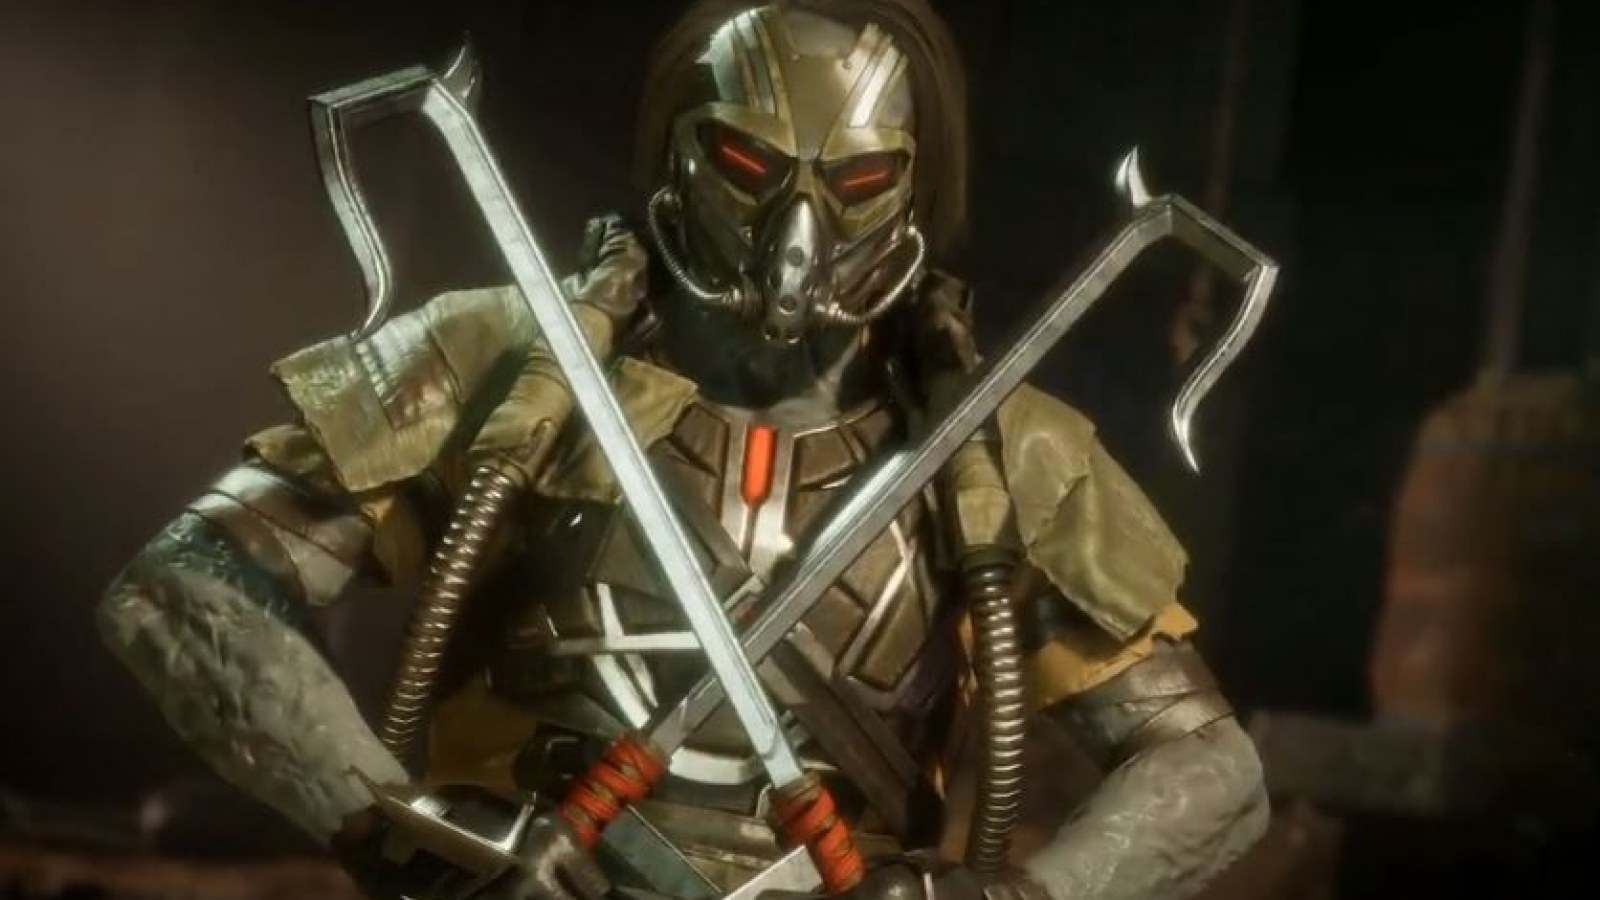 Mortal Kombat 11' Roster: Every Character in the Game